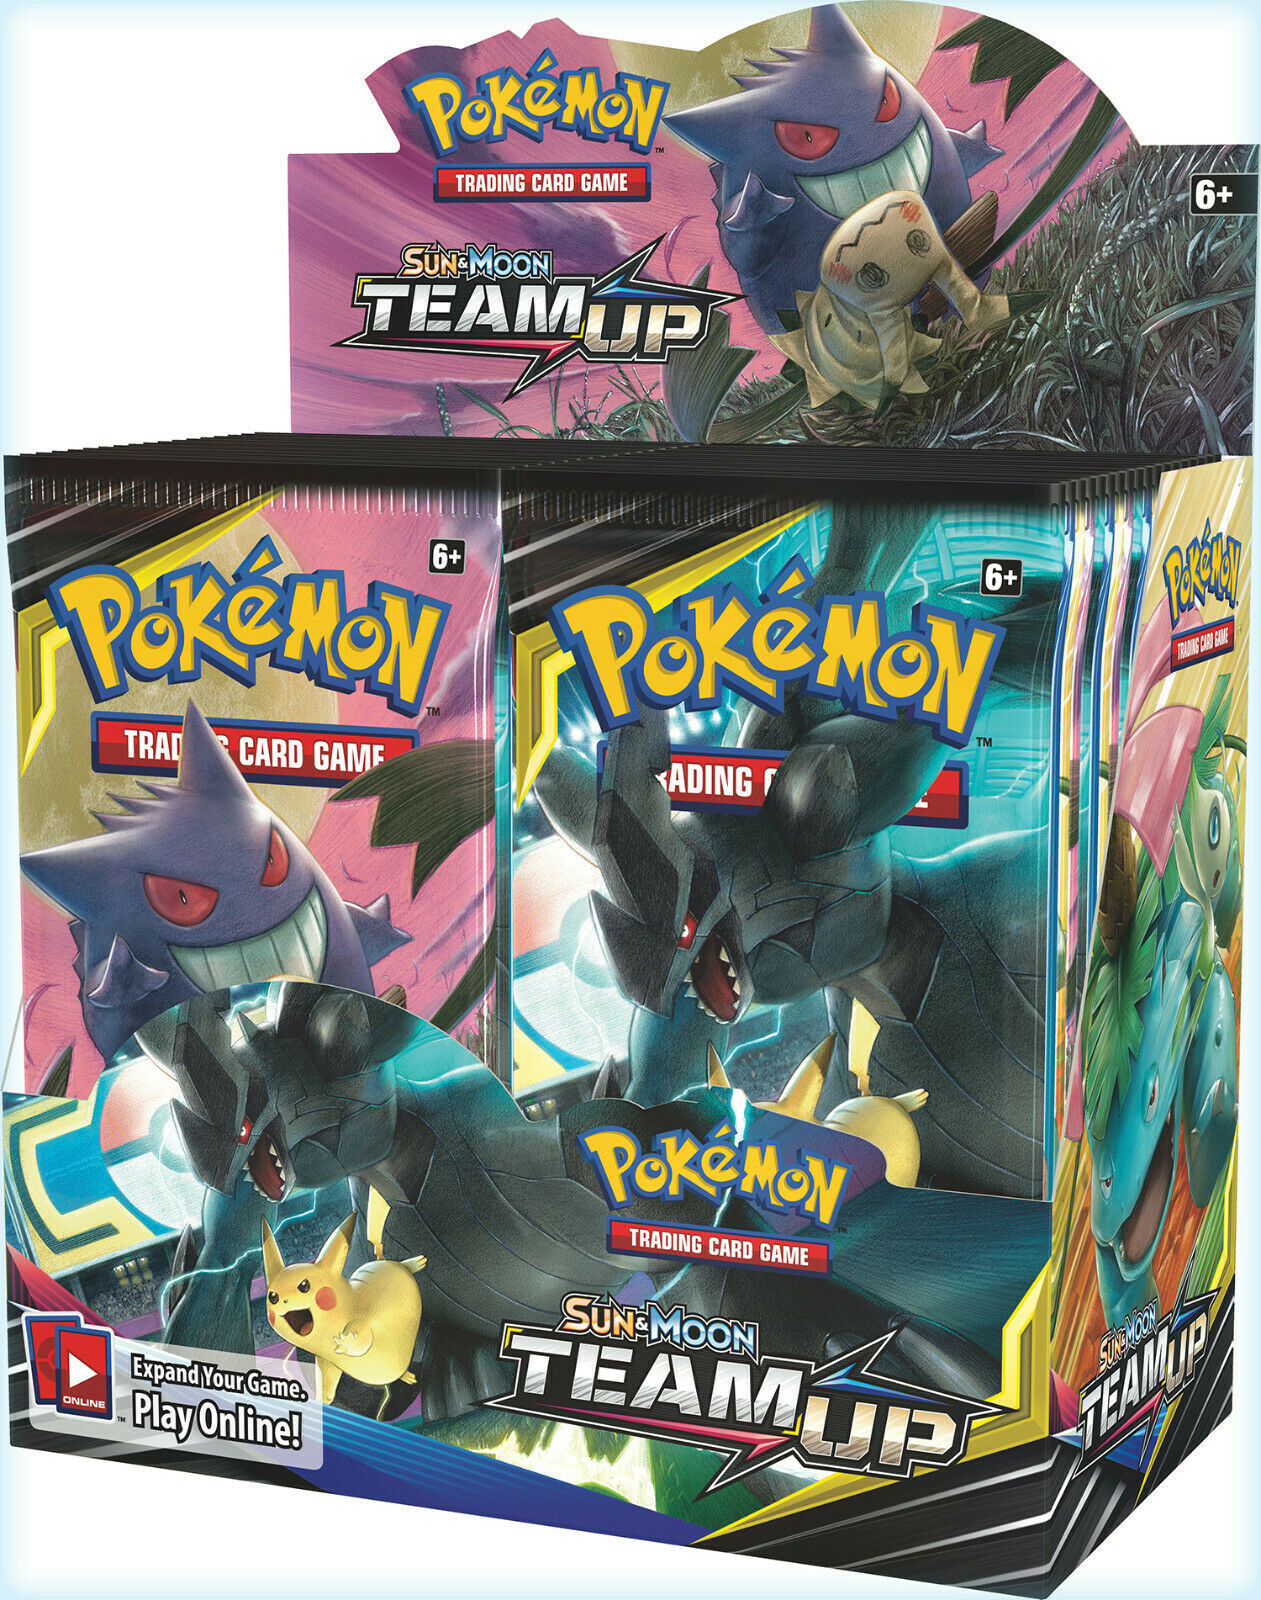 Pokemon TCG Sun & Moon Team Up + XY Fates Collide Booster Box Bundle image 2